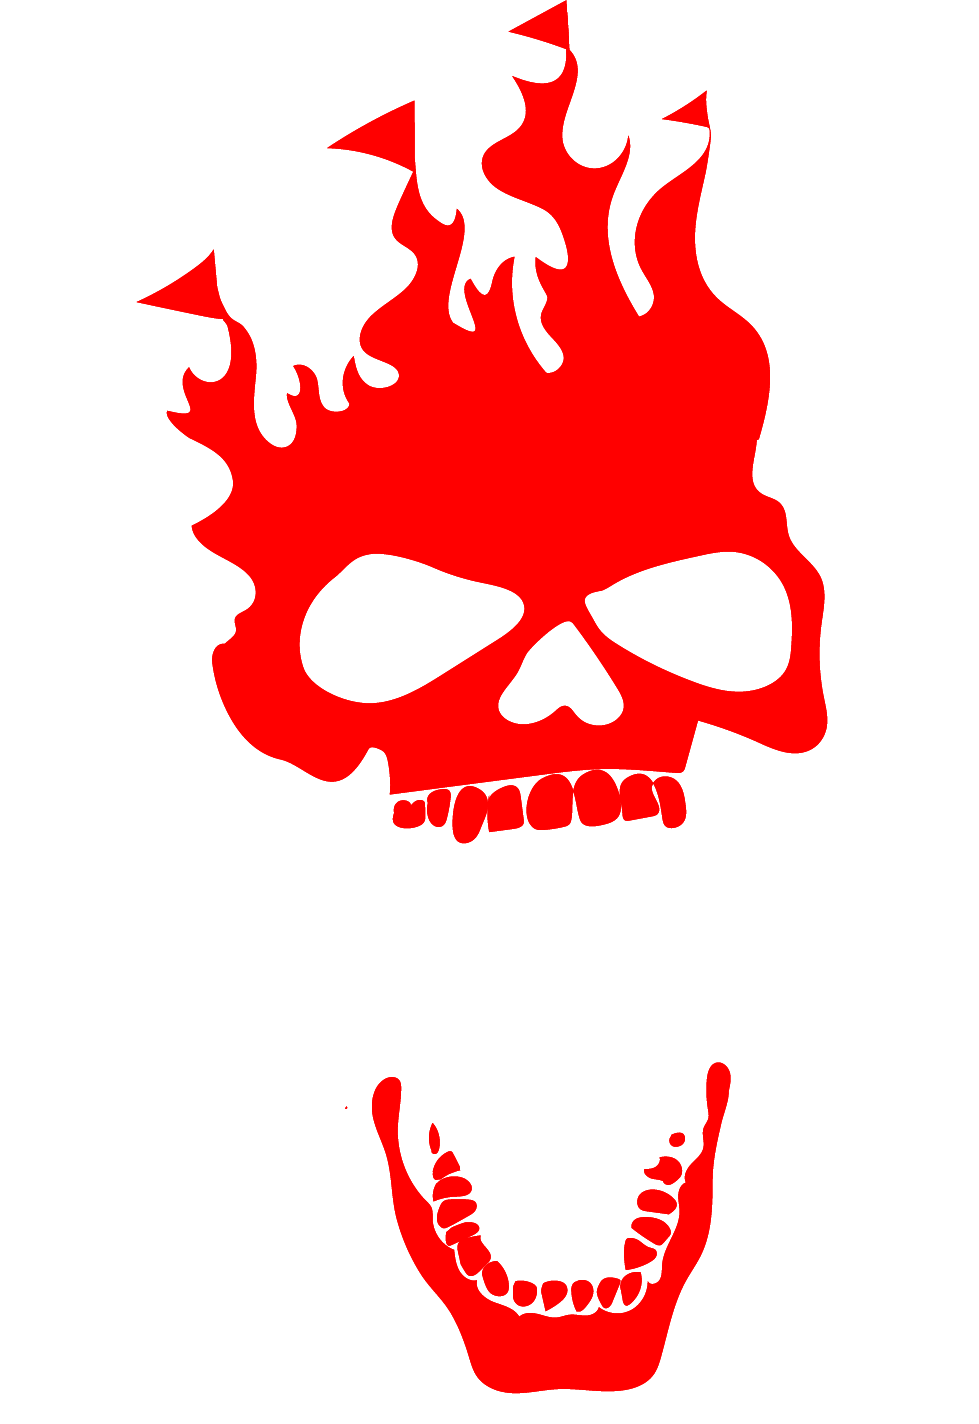 """This is the logo for Purgatory Scream Park Haunted House in Houston Texas. It shows a Red skull with flag tipped flames emanating from the top of the head. The mouth is open and the words """"Purgatory Scream Park"""" in white are between the jaws of the skull."""